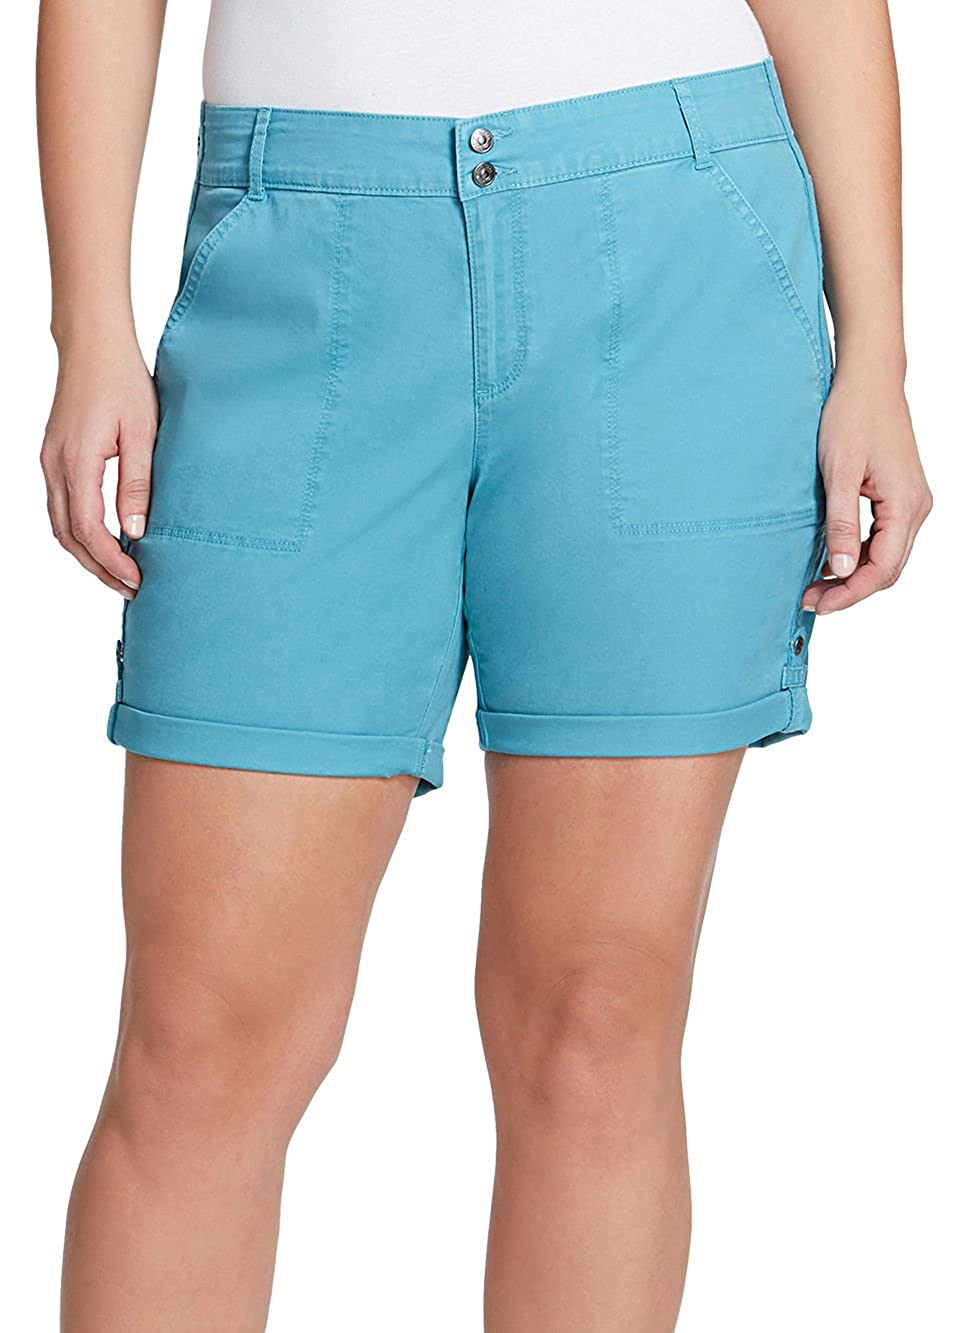 ebcc4e3489d Amazon.com  Gloria Vanderbilt Plus Maren Rolled Hems Shorts 24W Steel blue   Clothing